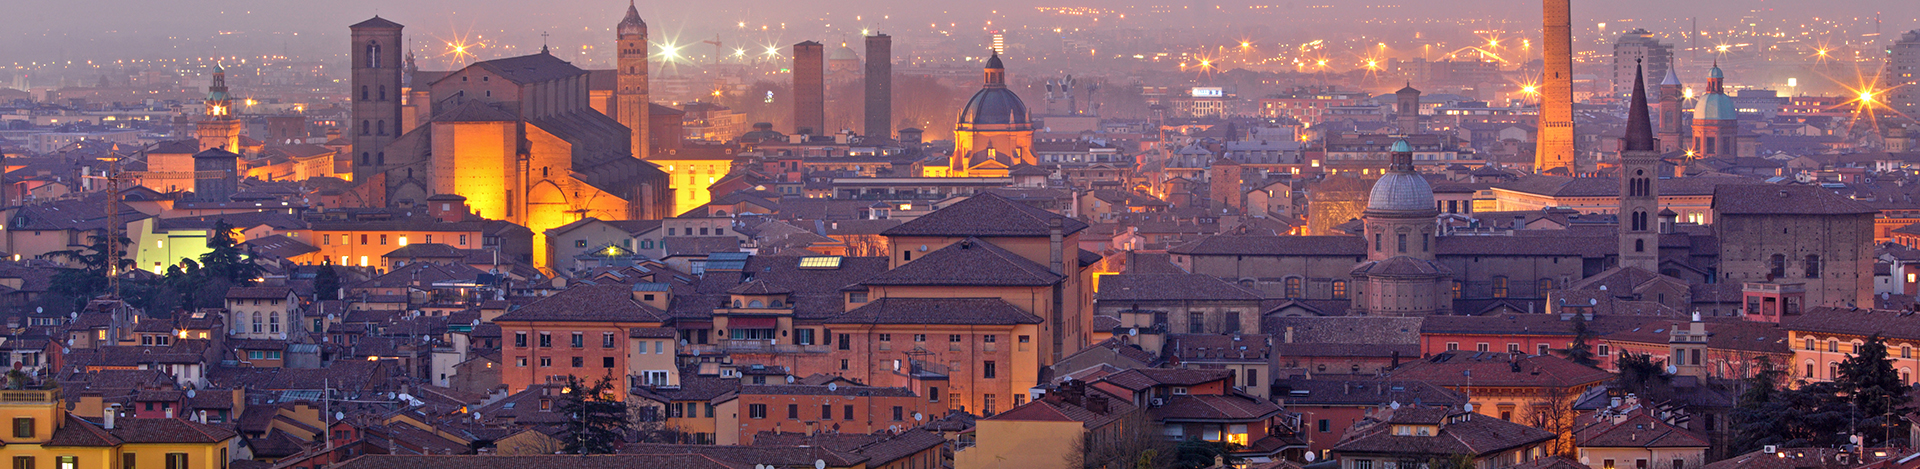 Bologna Italy at dusk